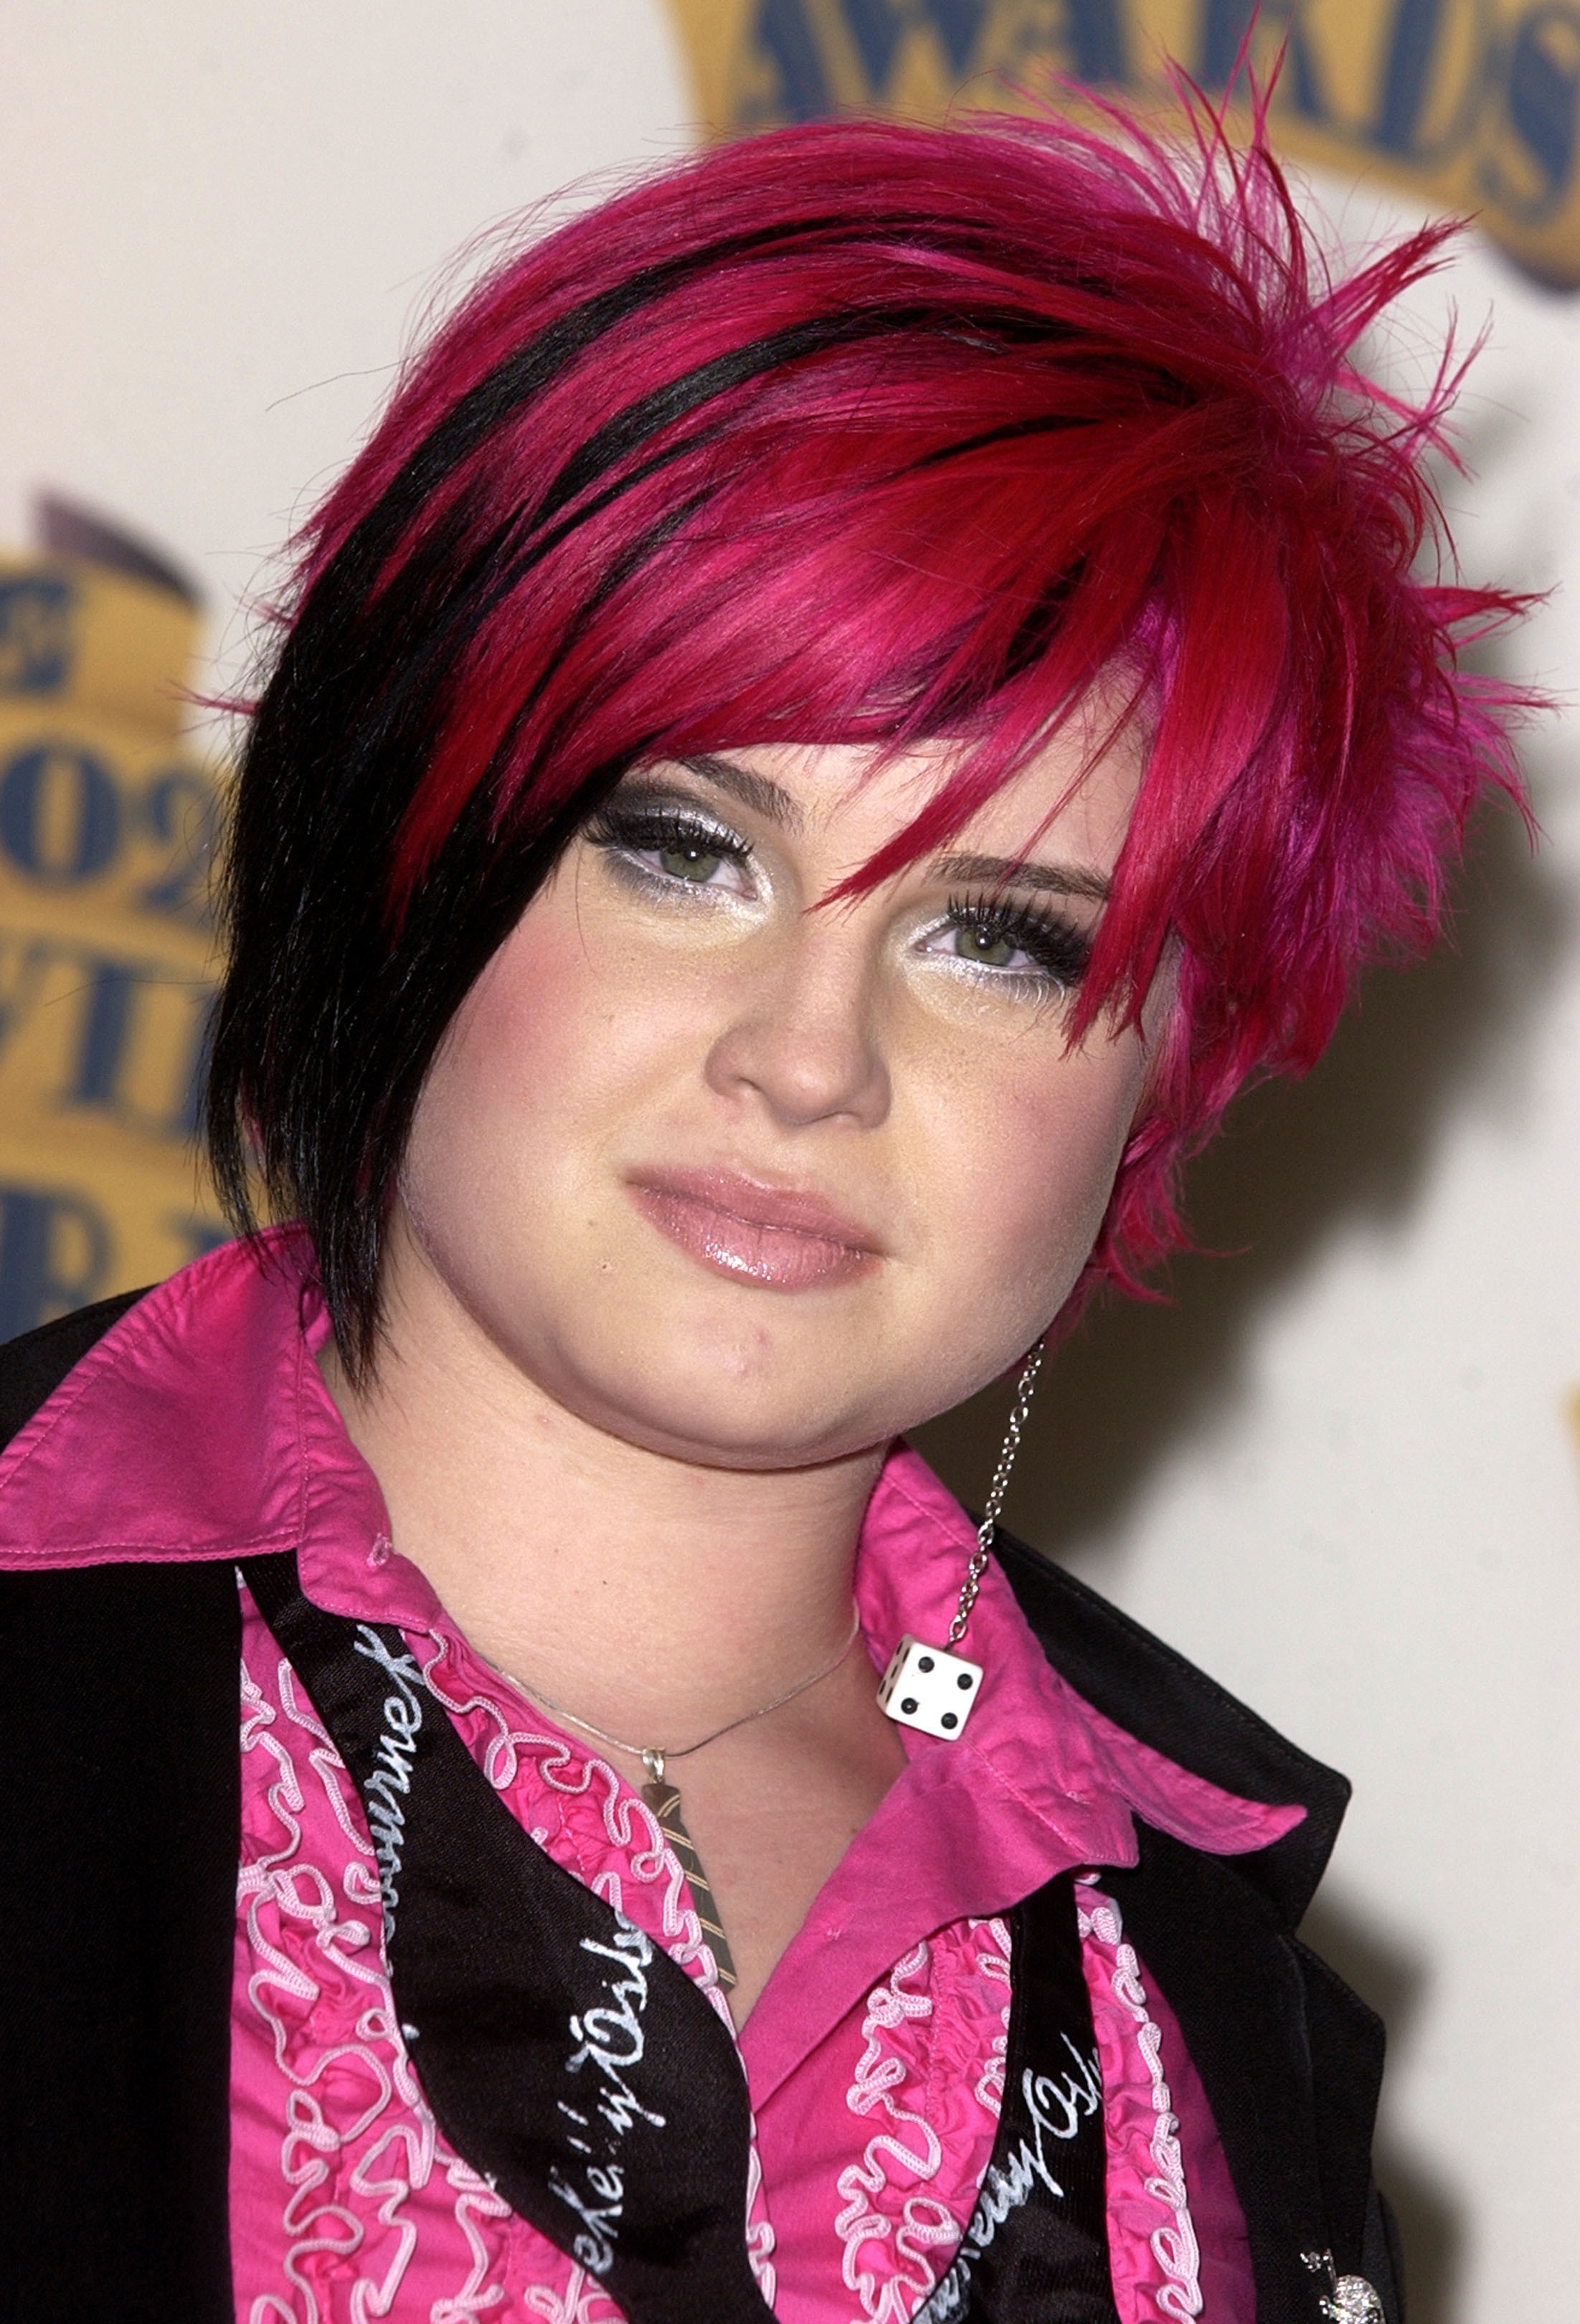 kelly osbourne hair color purple style makeover bangs fashion police